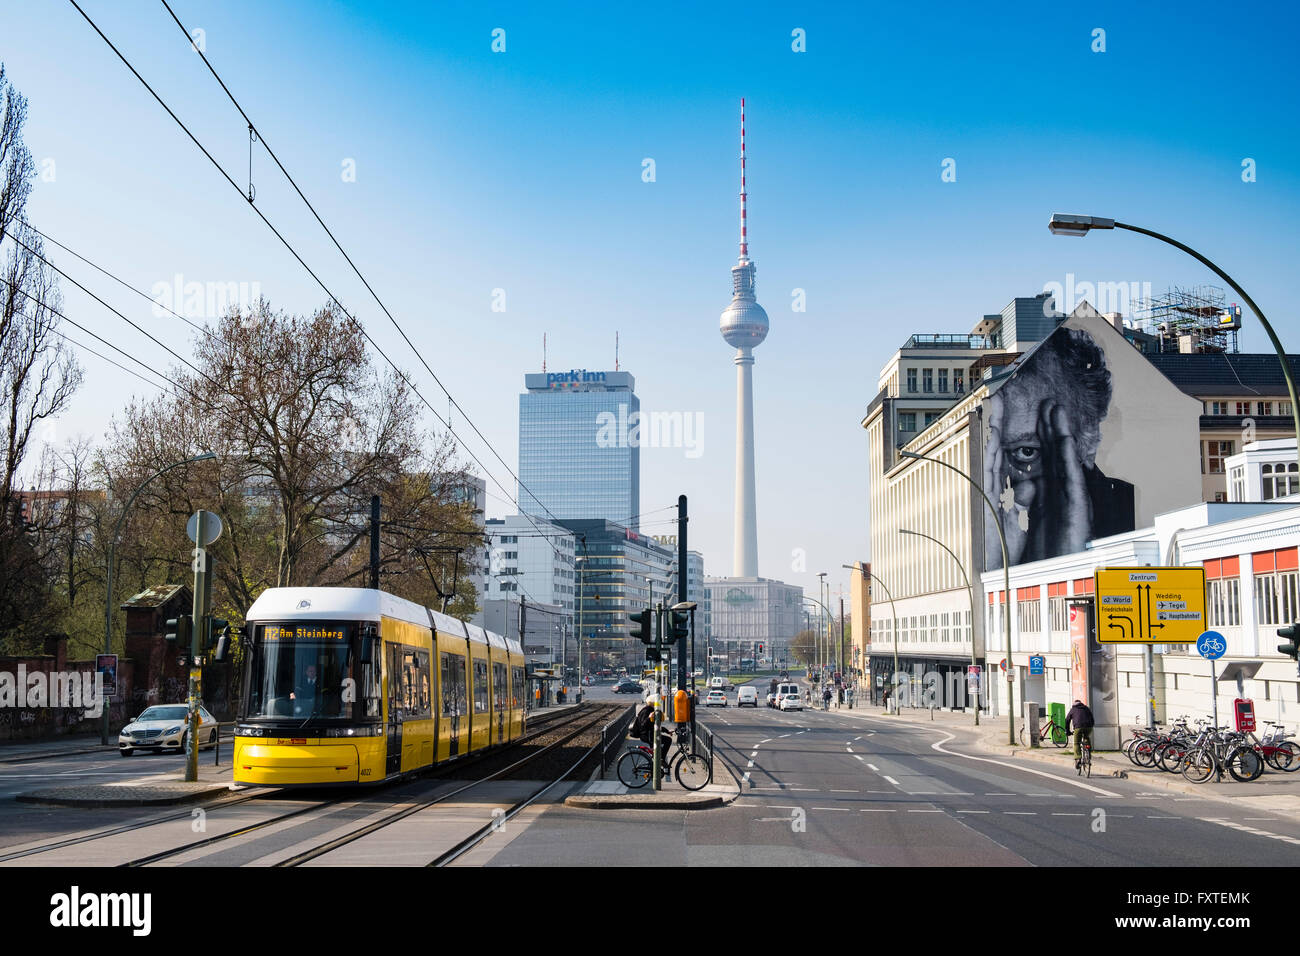 'JR' mural on building wall and Television Tower in Berlin Germany - Stock Image